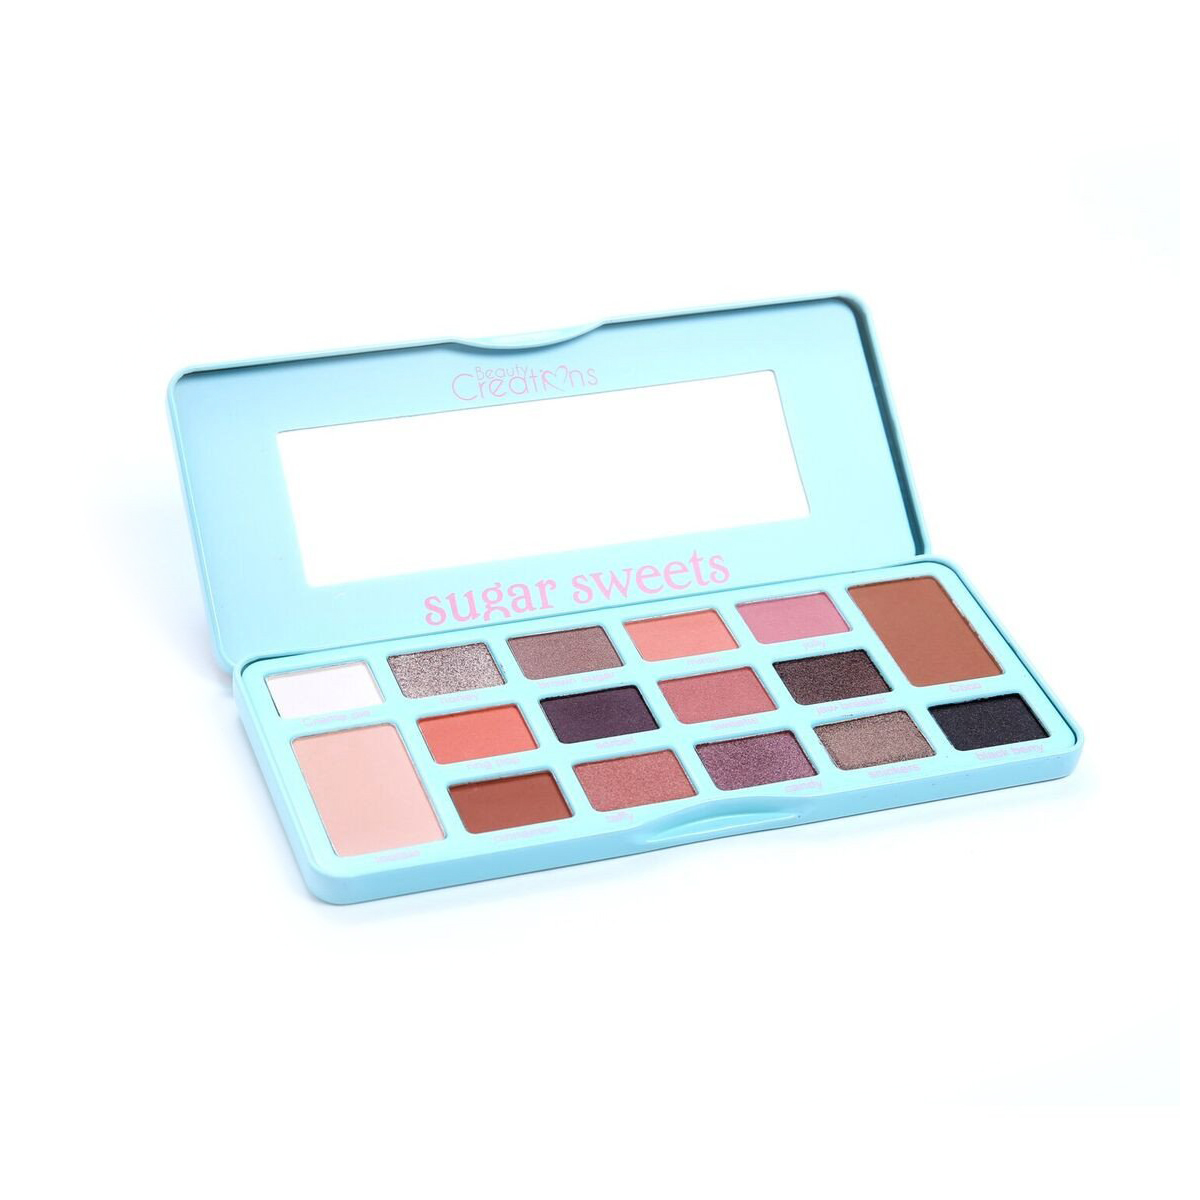 Beauty Creations Sugar Sweets Palette